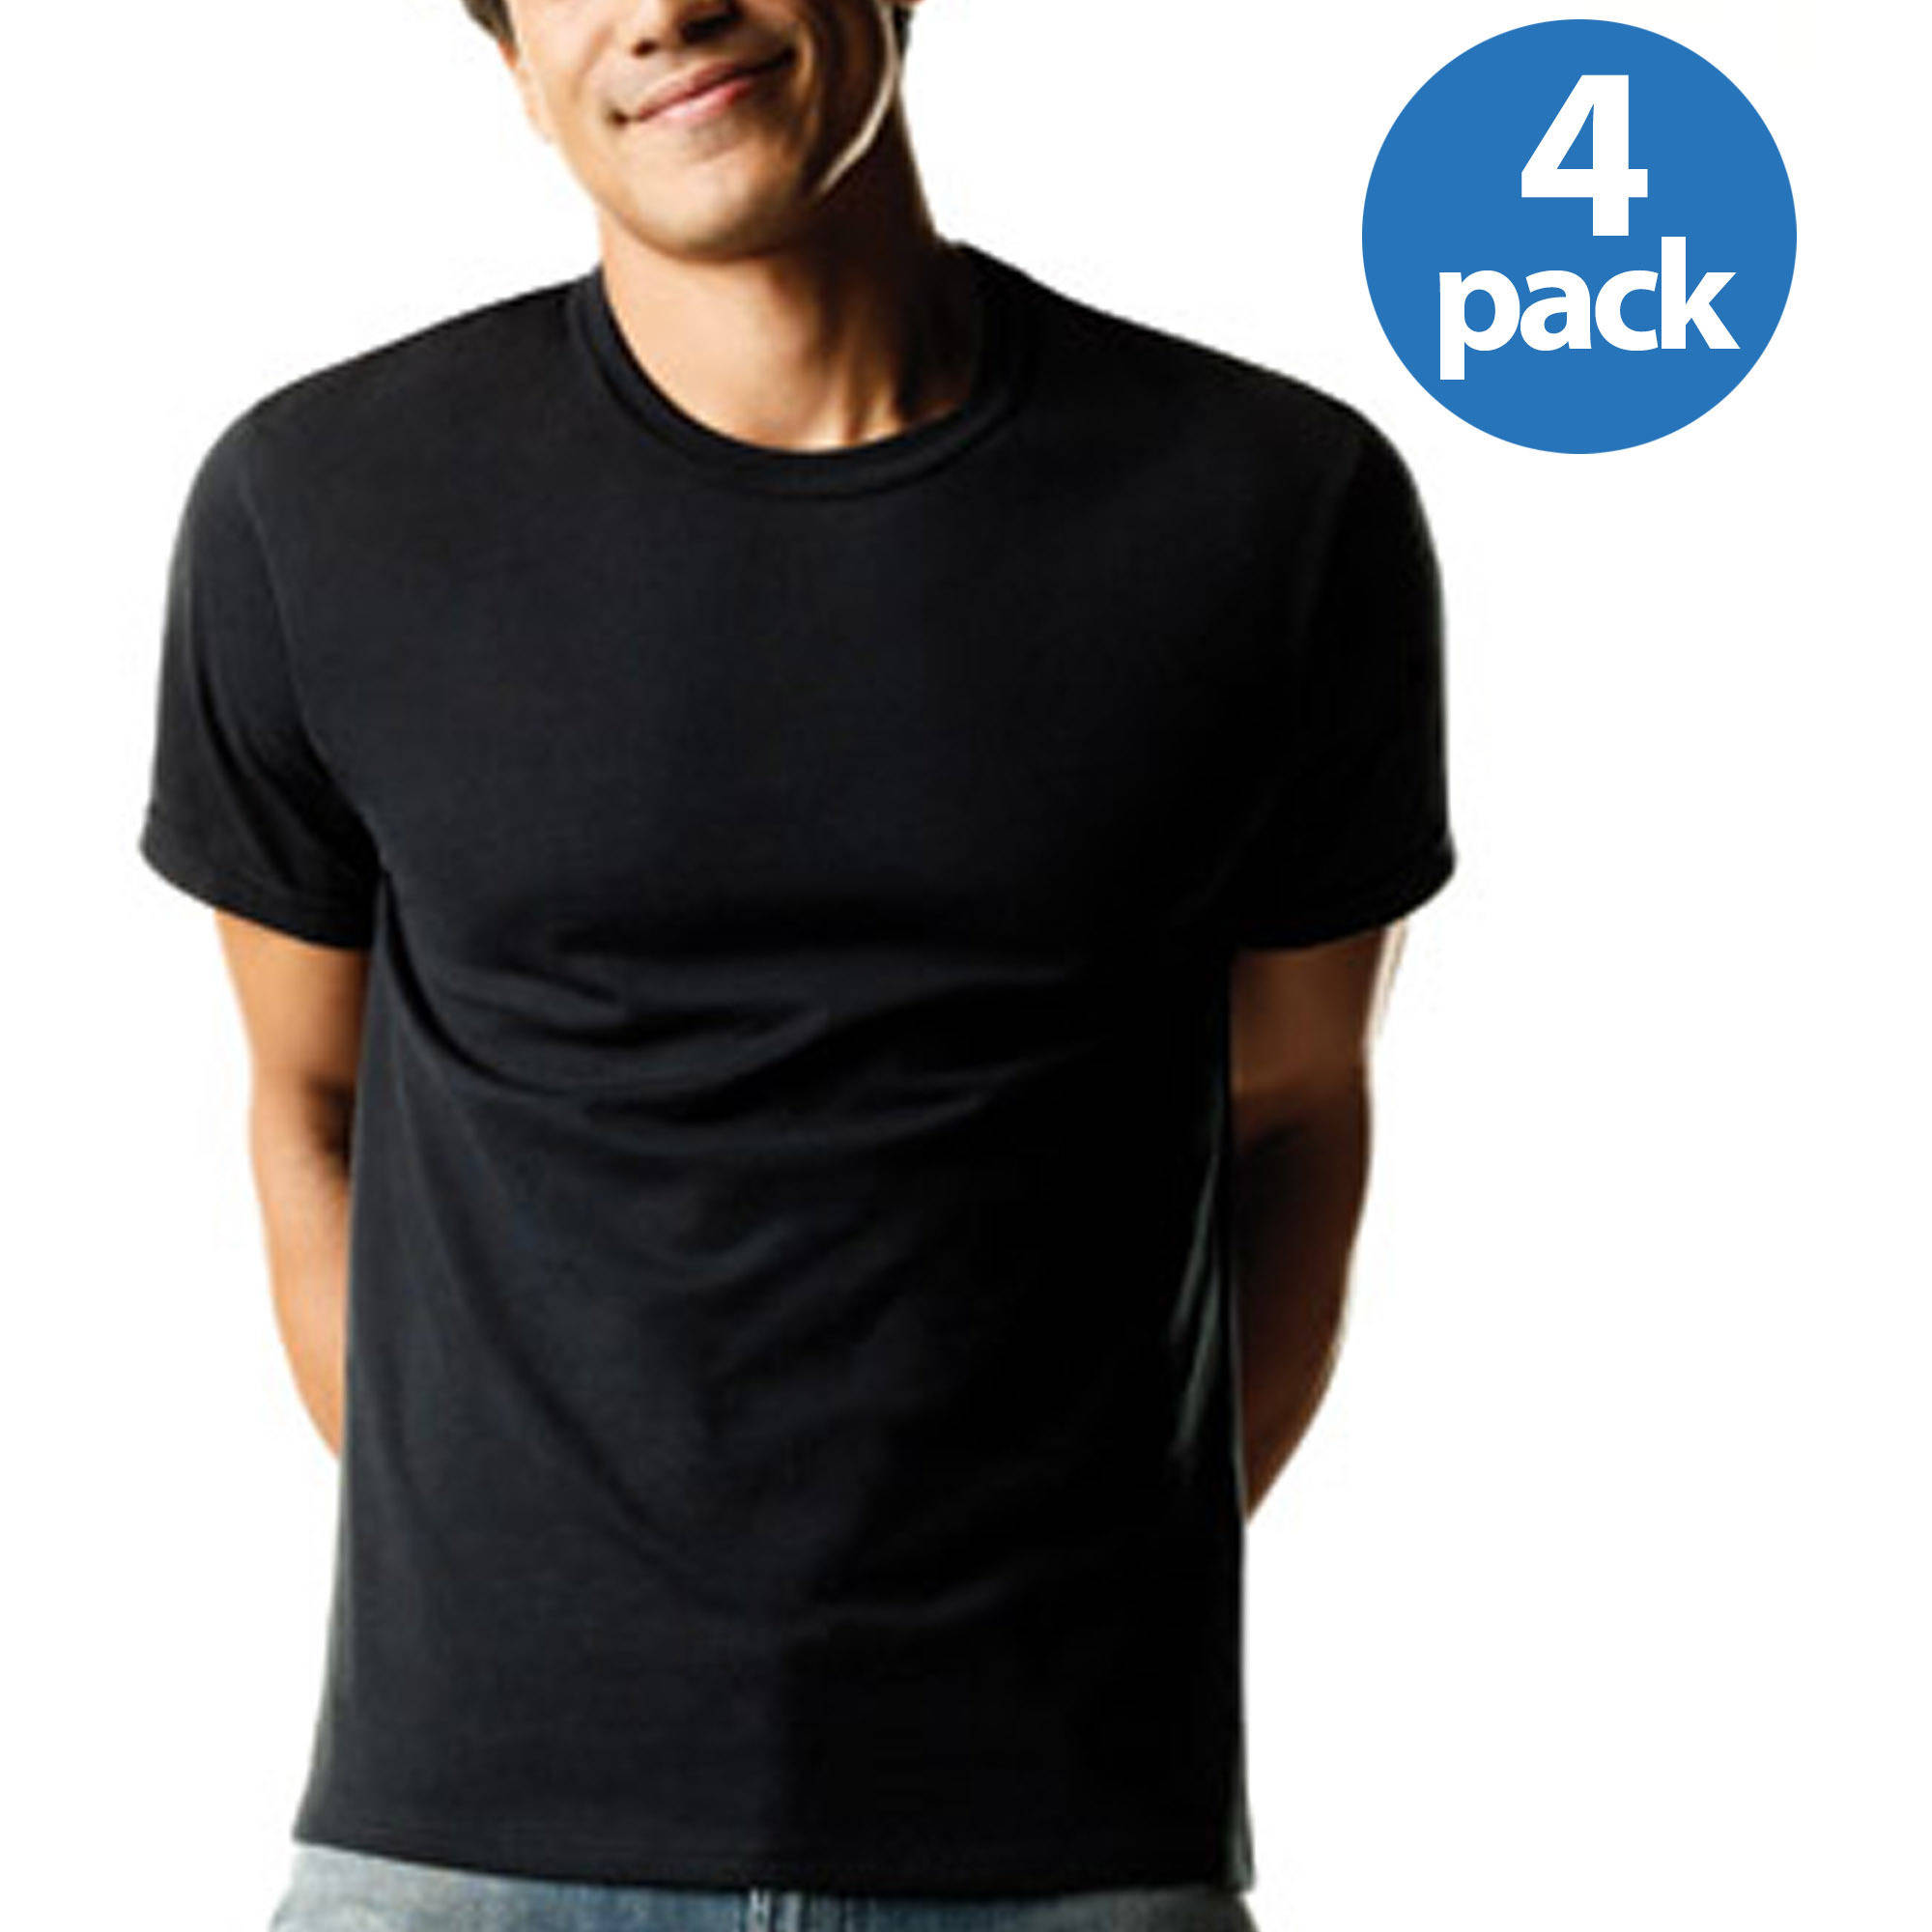 Hanes Men's FreshIQ ComfortSoft Dyed Crew Neck T-Shirts 4-Pack